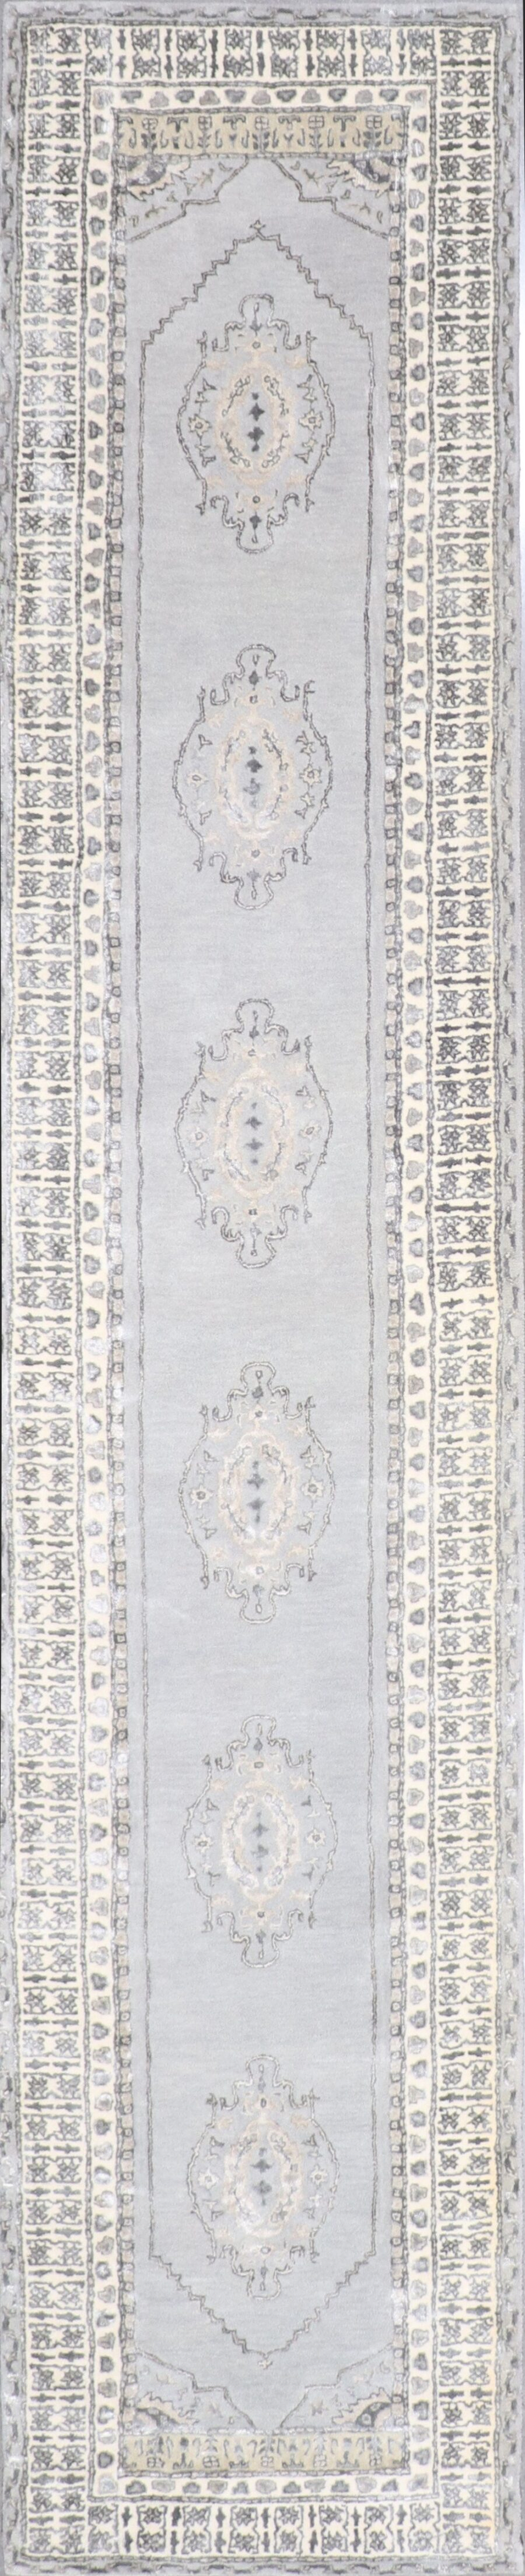 """2'9""""x14' Decorative Vintage Wool & Silk Hand-Tufted Rug - Direct Rug Import   Rugs in Chicago, Indiana,South Bend,Granger"""